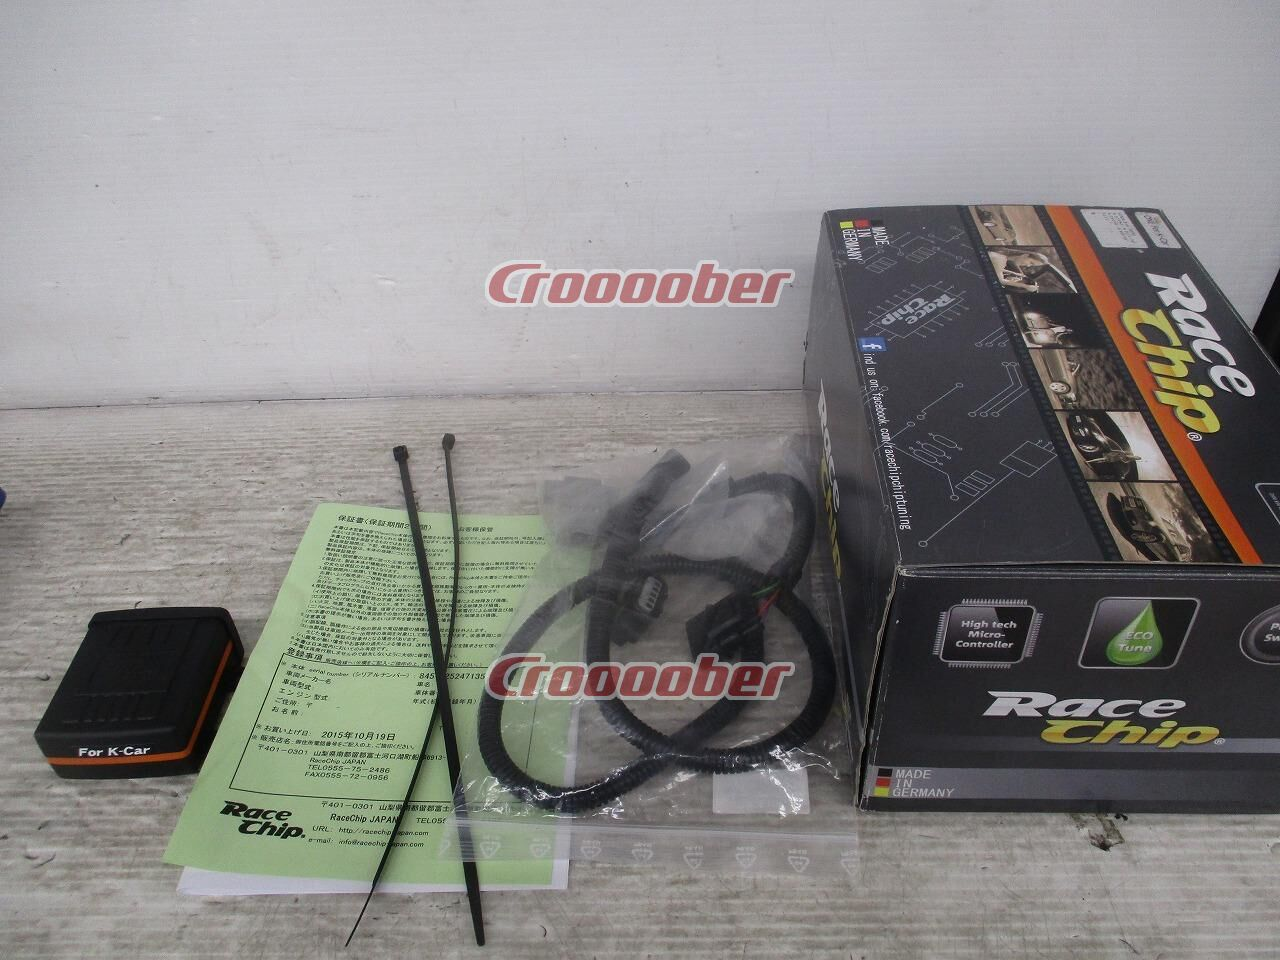 RACE CHIP RaceChip ONE For K-car | Tunning Electronix | Croooober Racechip Wire Harness Honda on